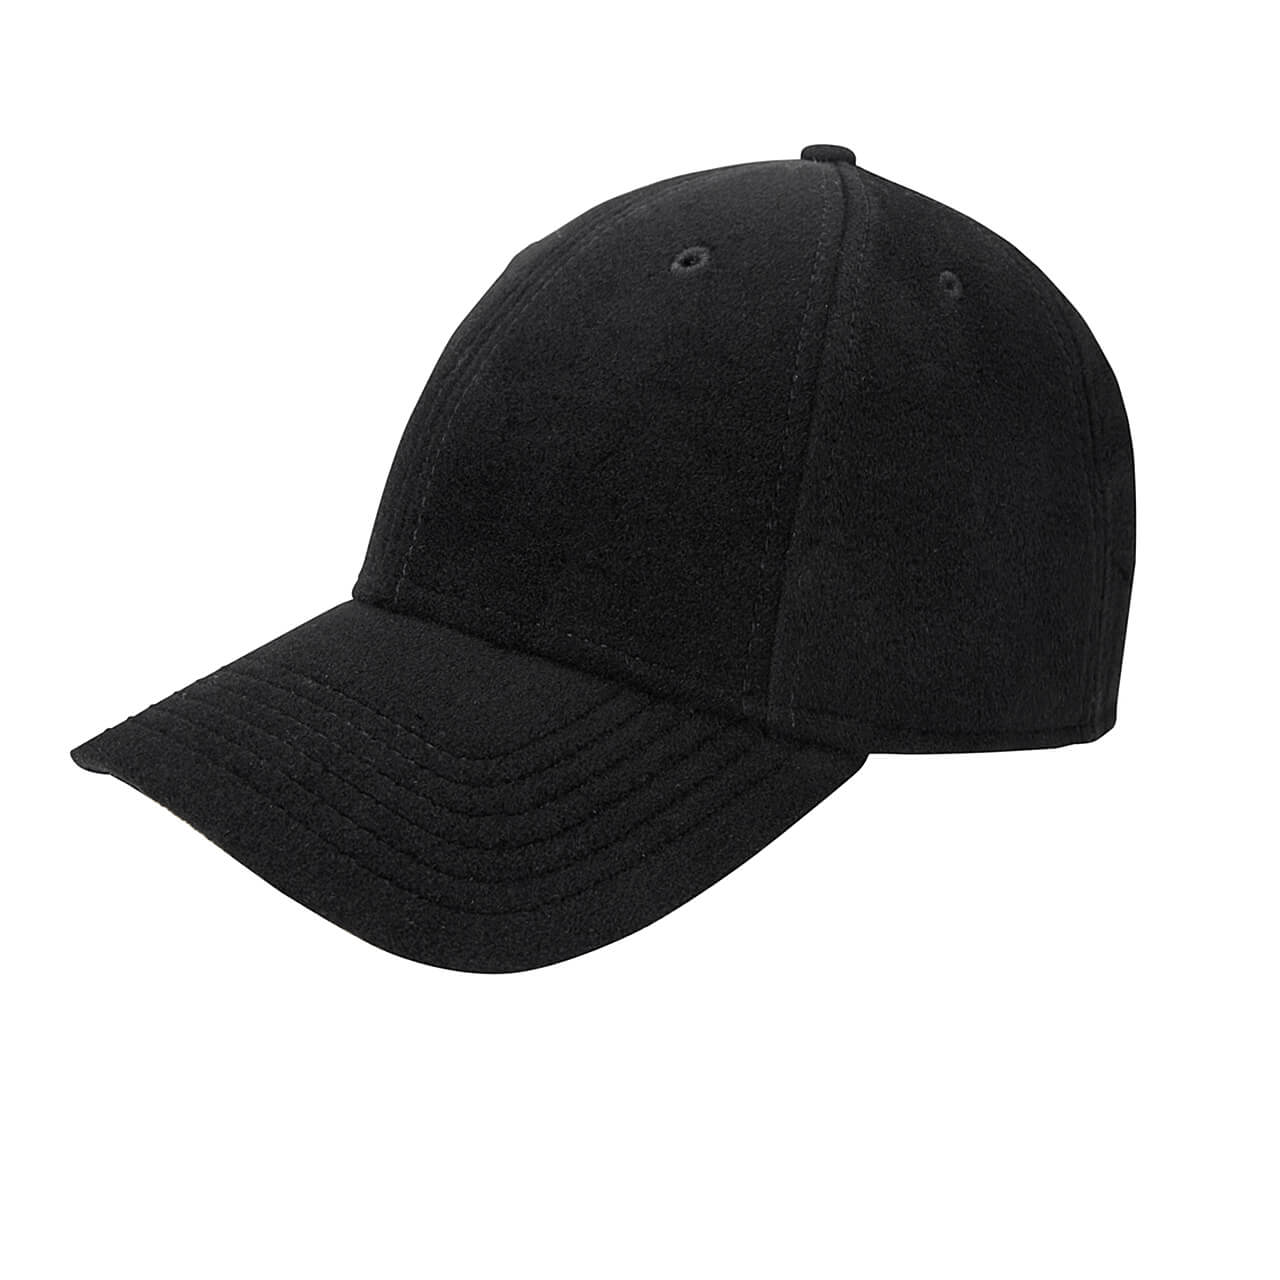 b7faef9f6af The 5 Best Simple Baseball Caps For Men - OnPointFresh